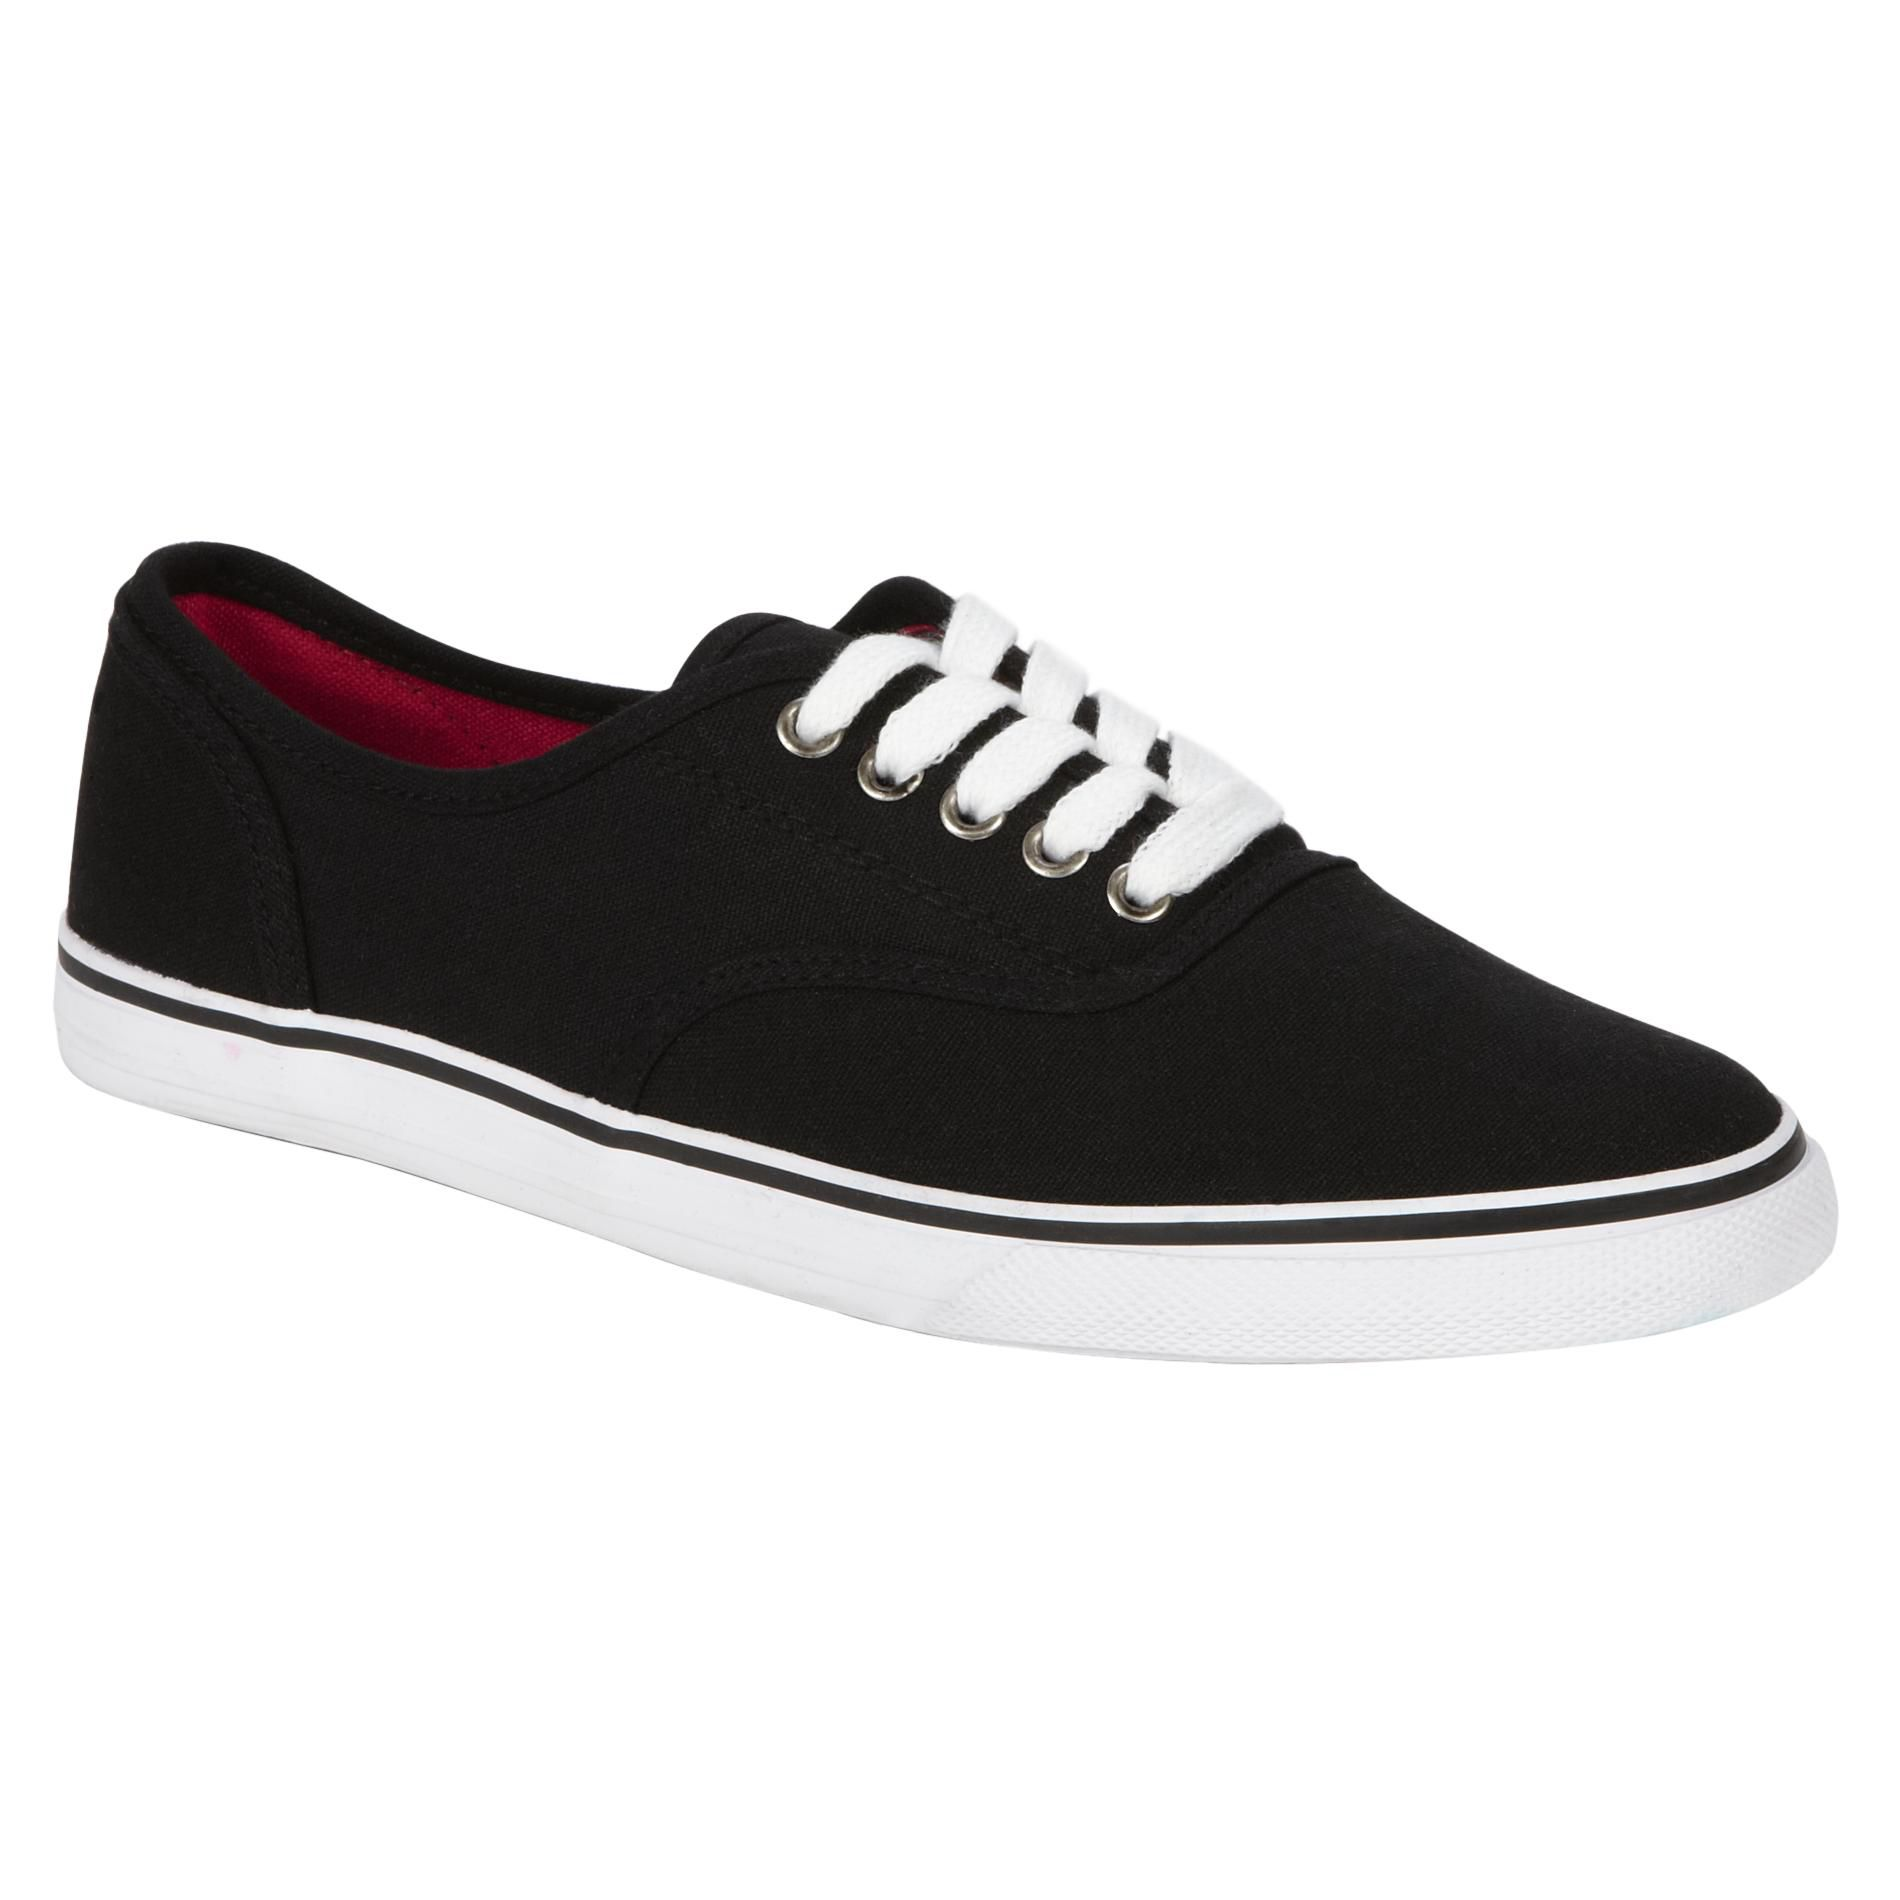 Women's Seattle Black Canvas Casual Shoes